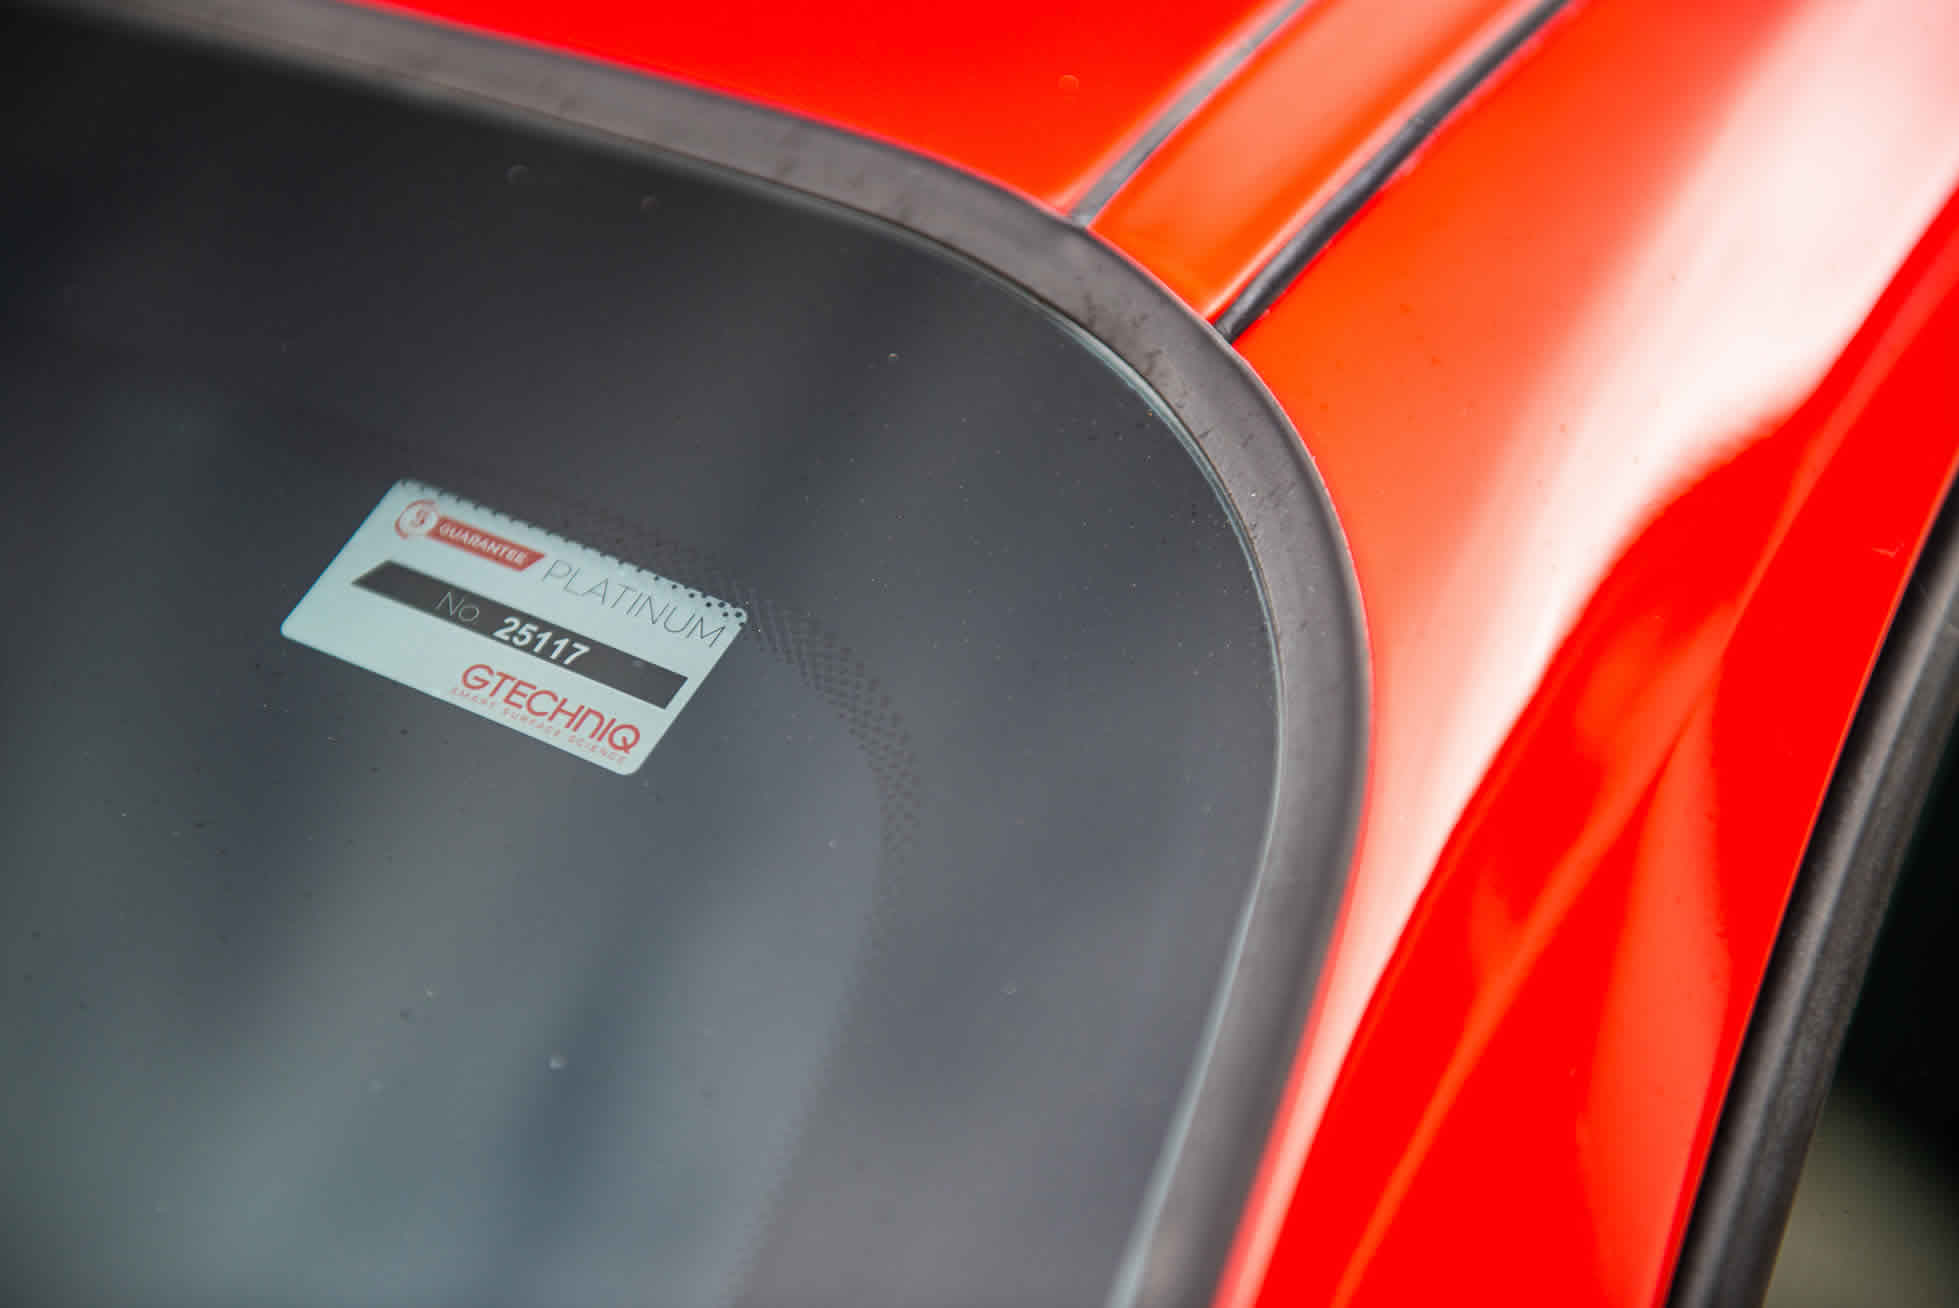 Numbering 2011 Porsche 911 Carrera GTS For Sale at Sports Purpose, Bicester Heriatge